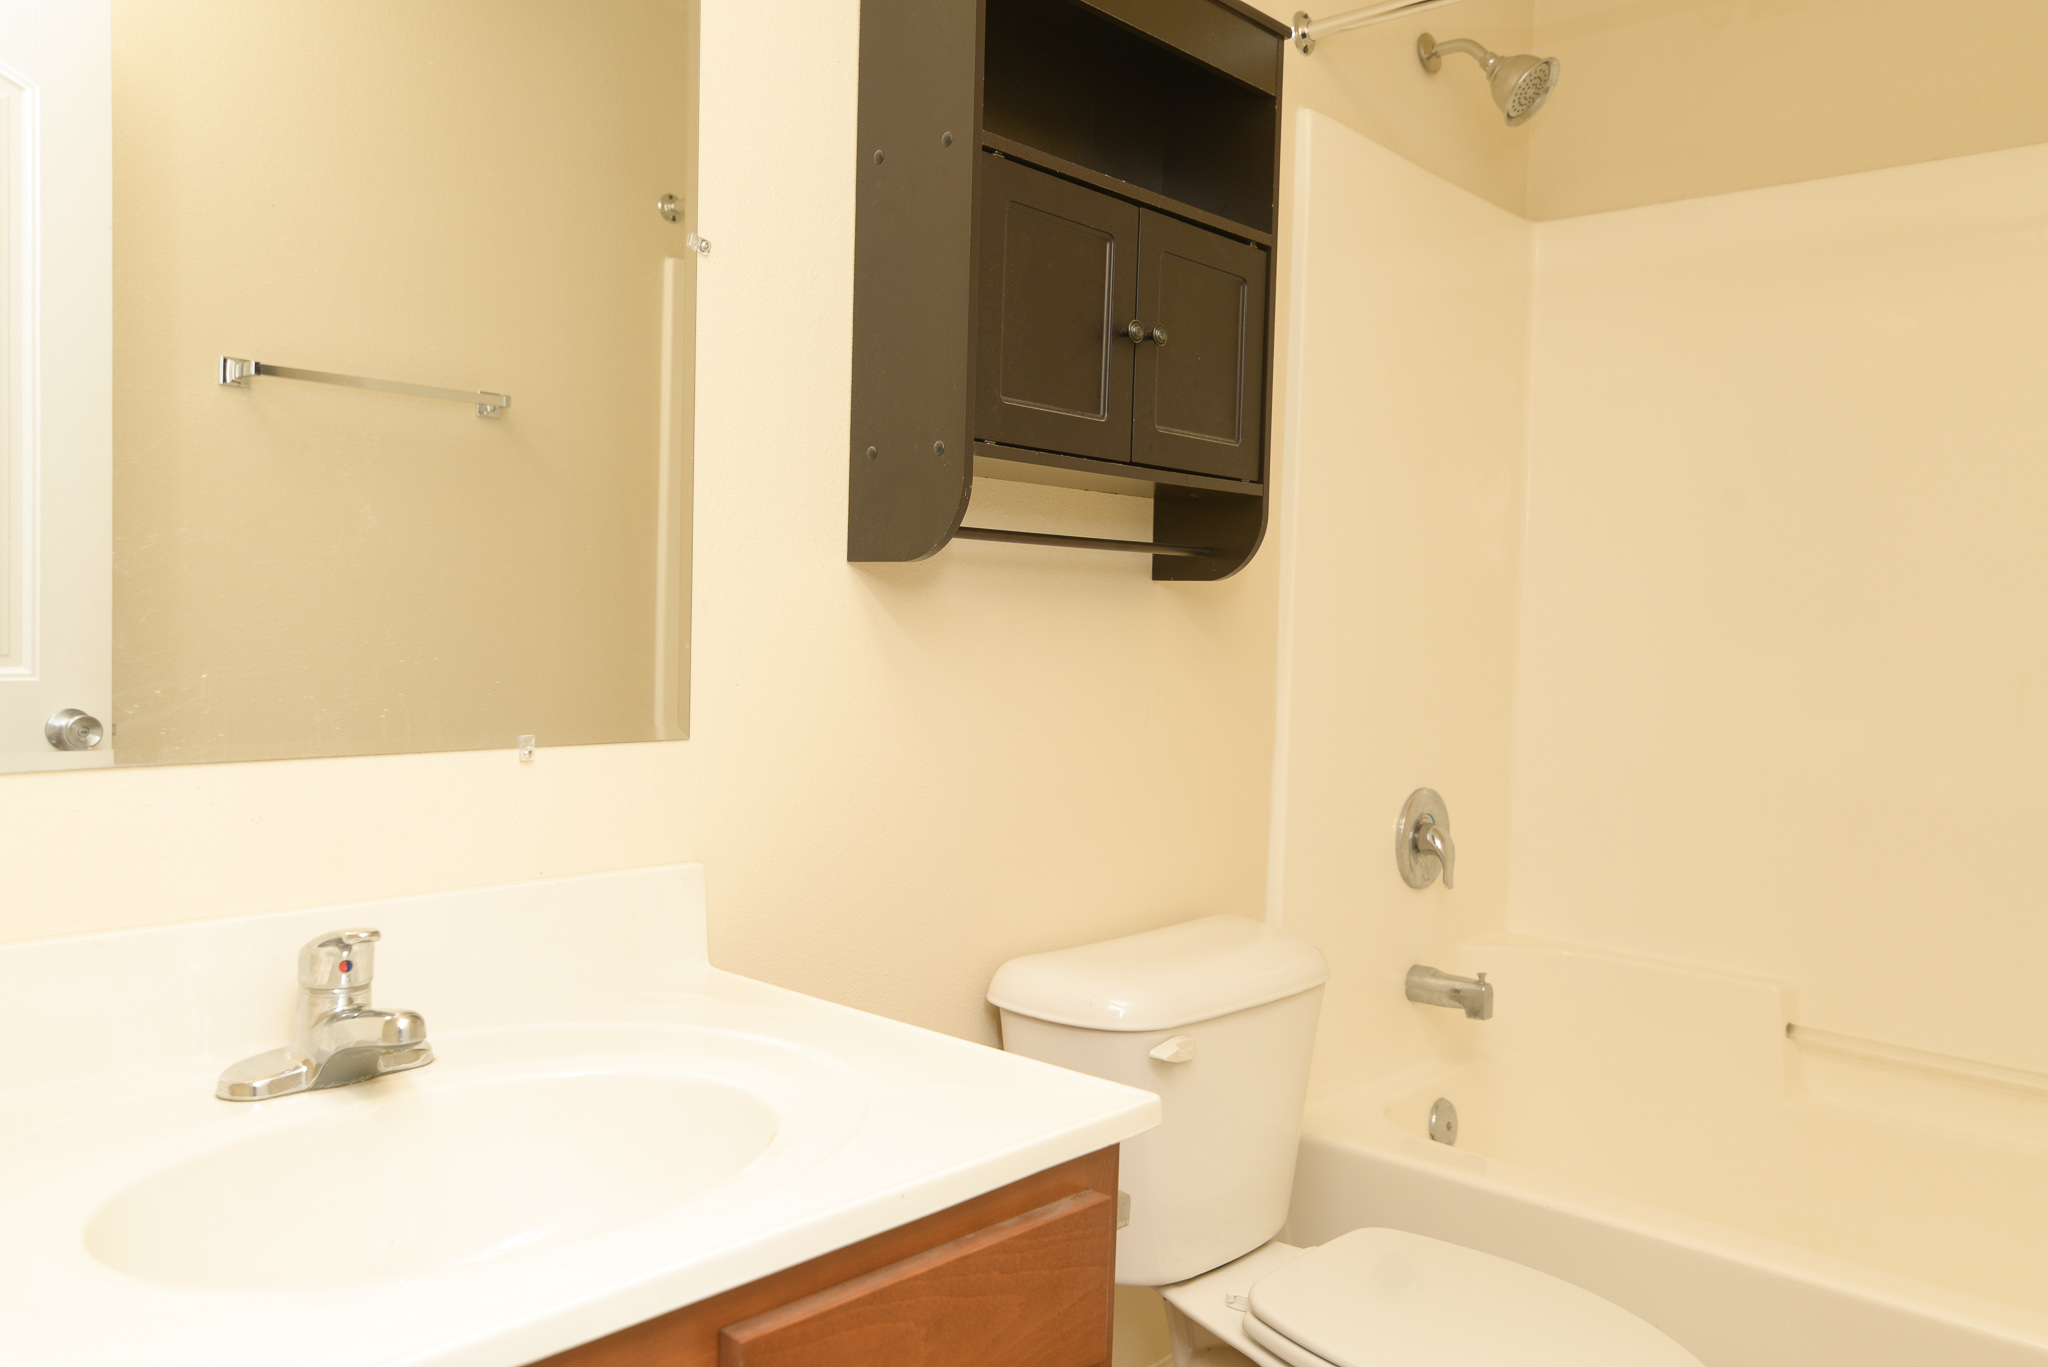 Home-For-Rent-Jefferson-City-Holts-Summit-Missouri-65109-Rentals-Property -Management-Capital-Investment-Realty (11)